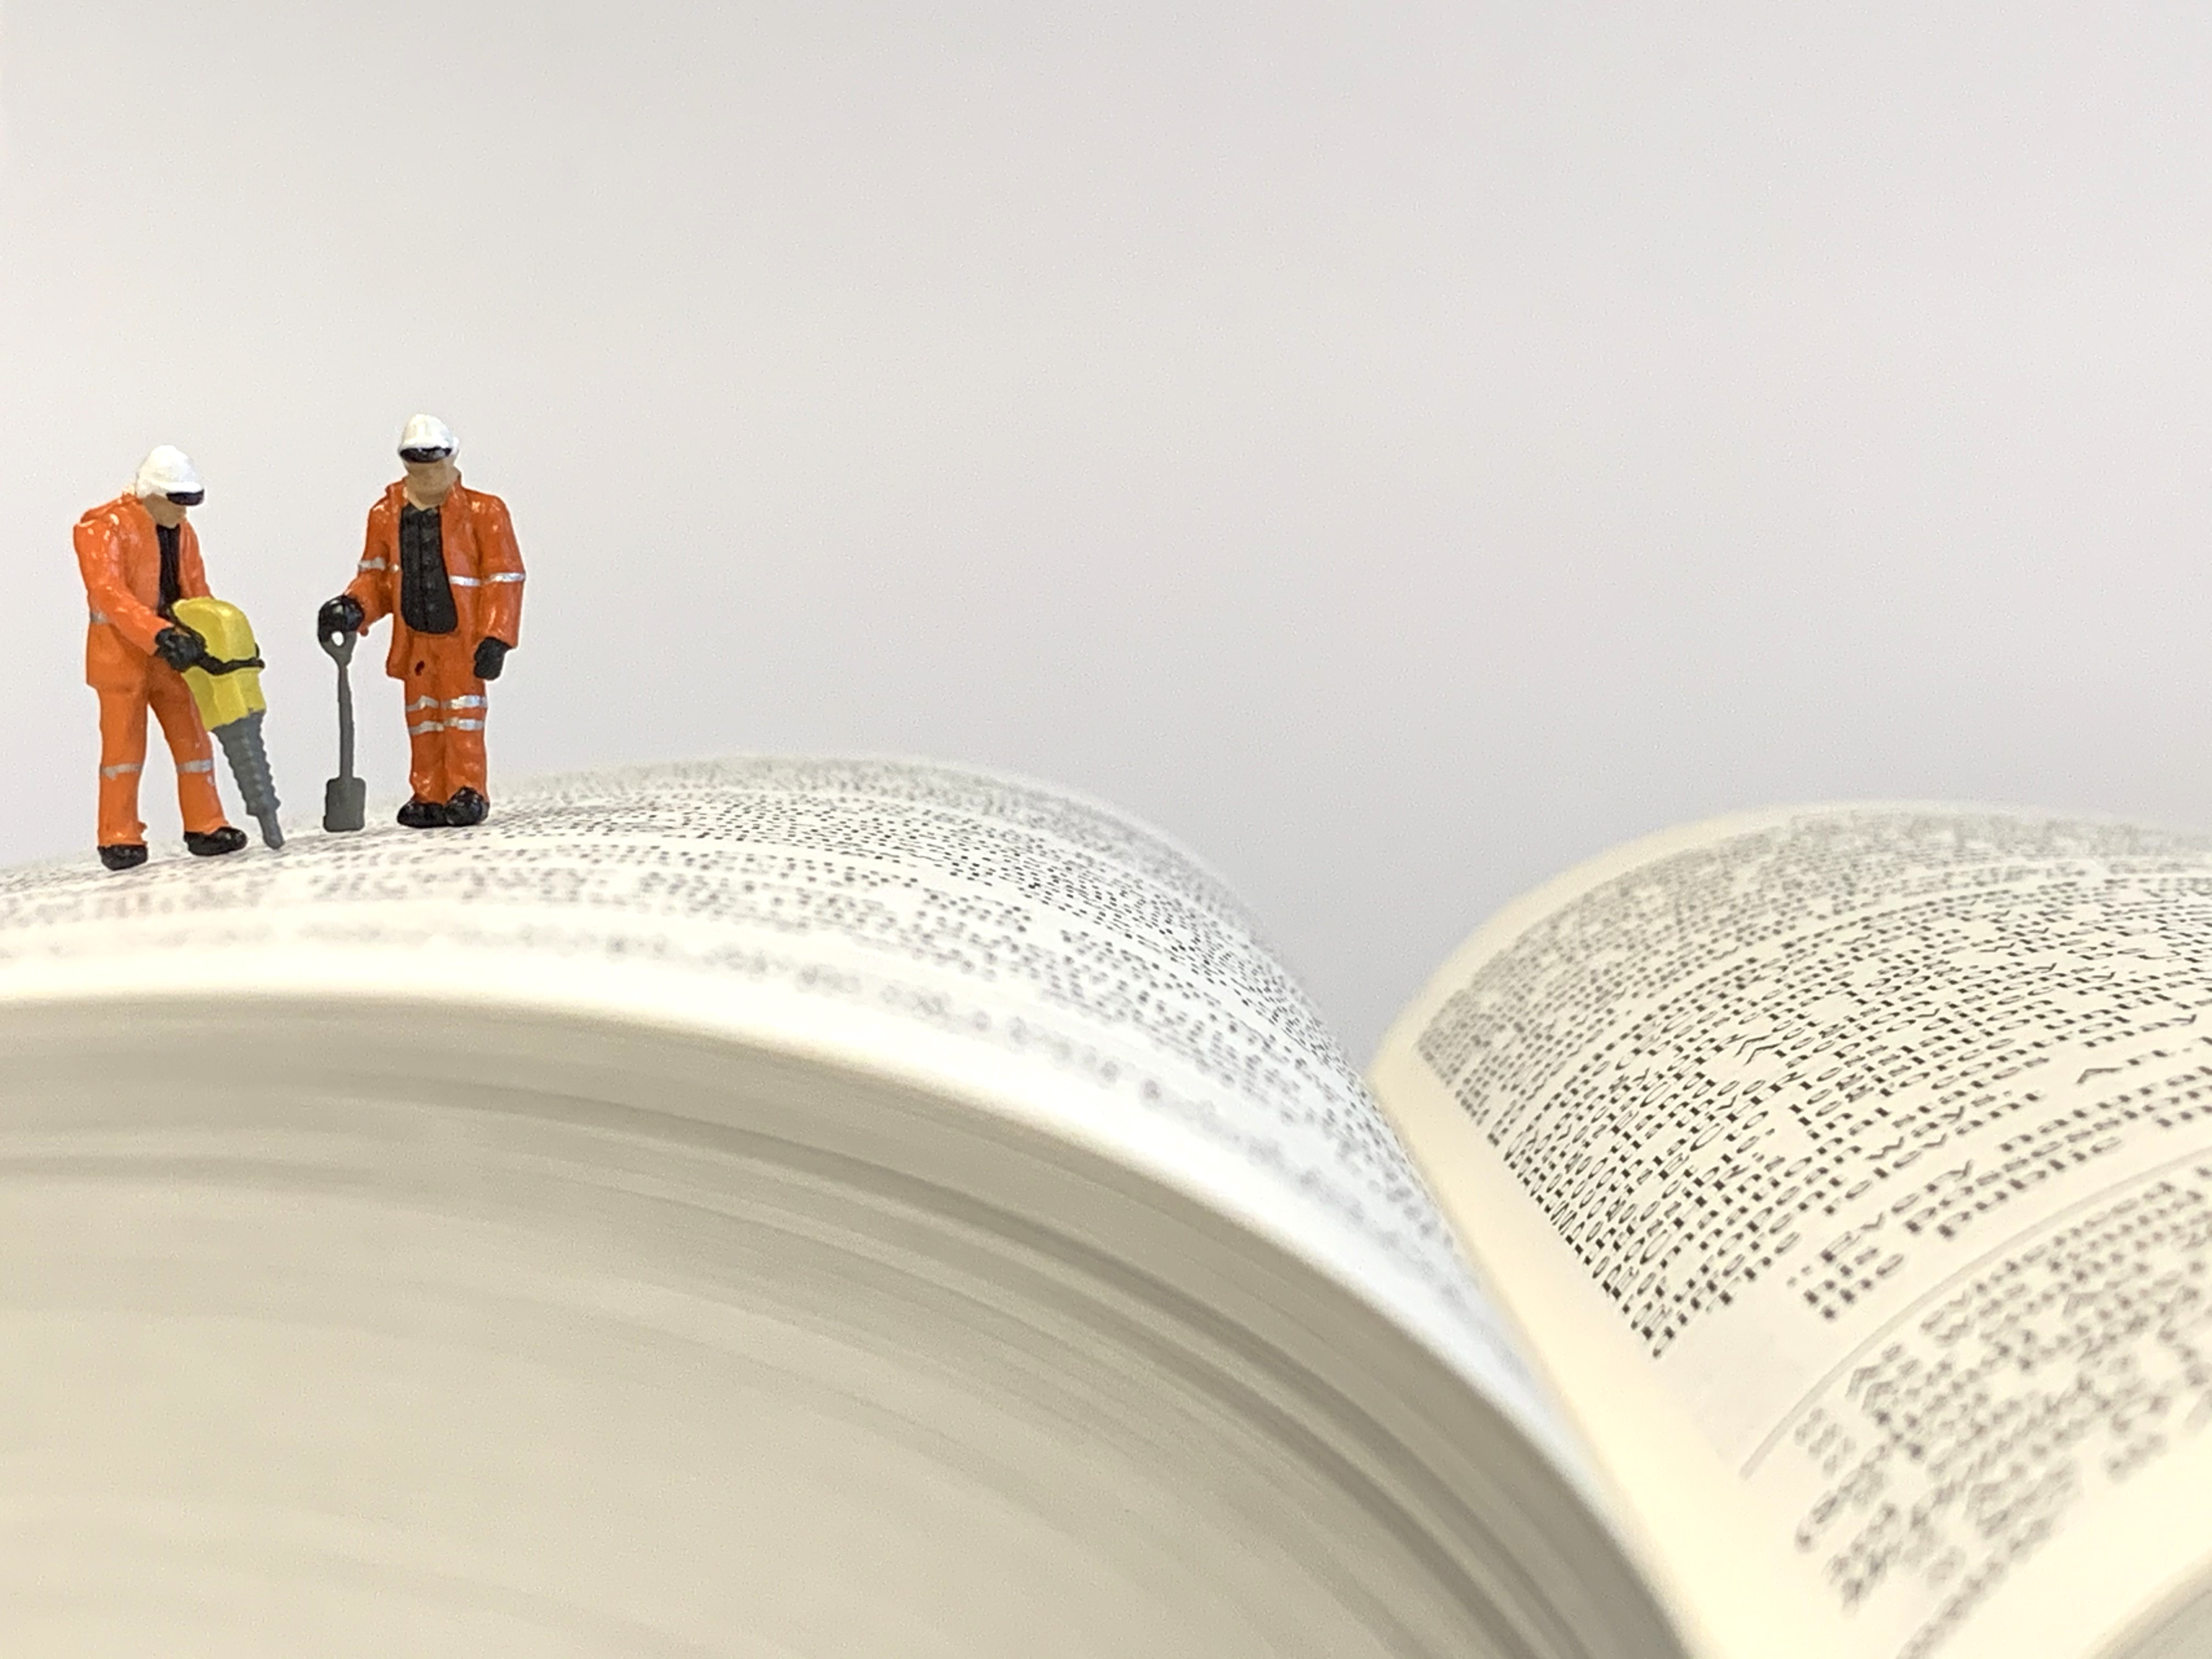 Workmen on book